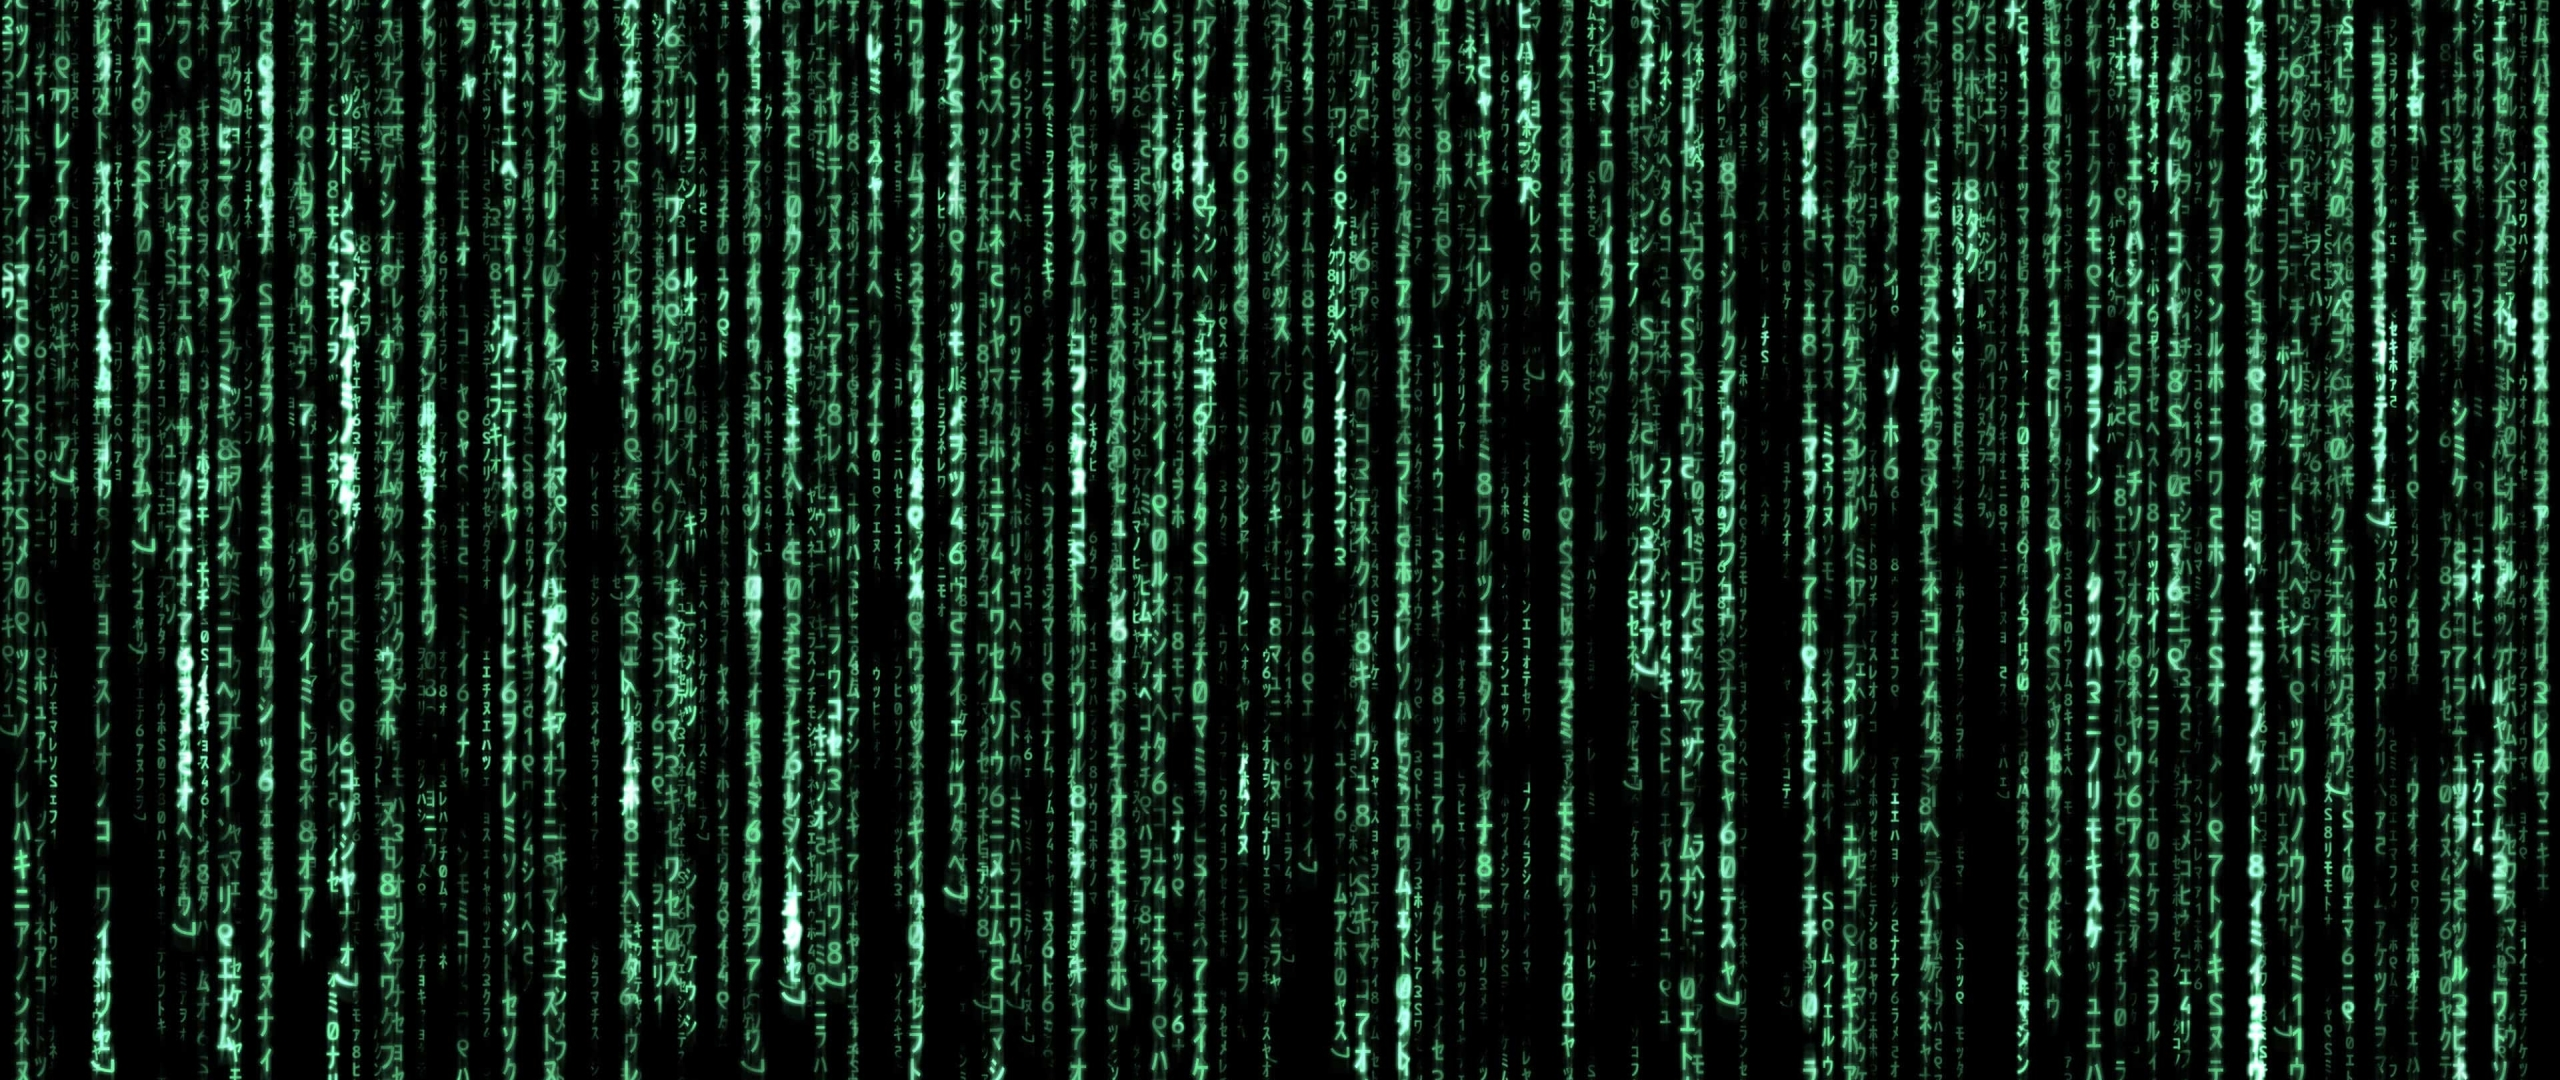 2560x1080 The Matrix 4k 2560x1080 Resolution Wallpaper Hd Movies 4k Wallpapers Images Photos And Background